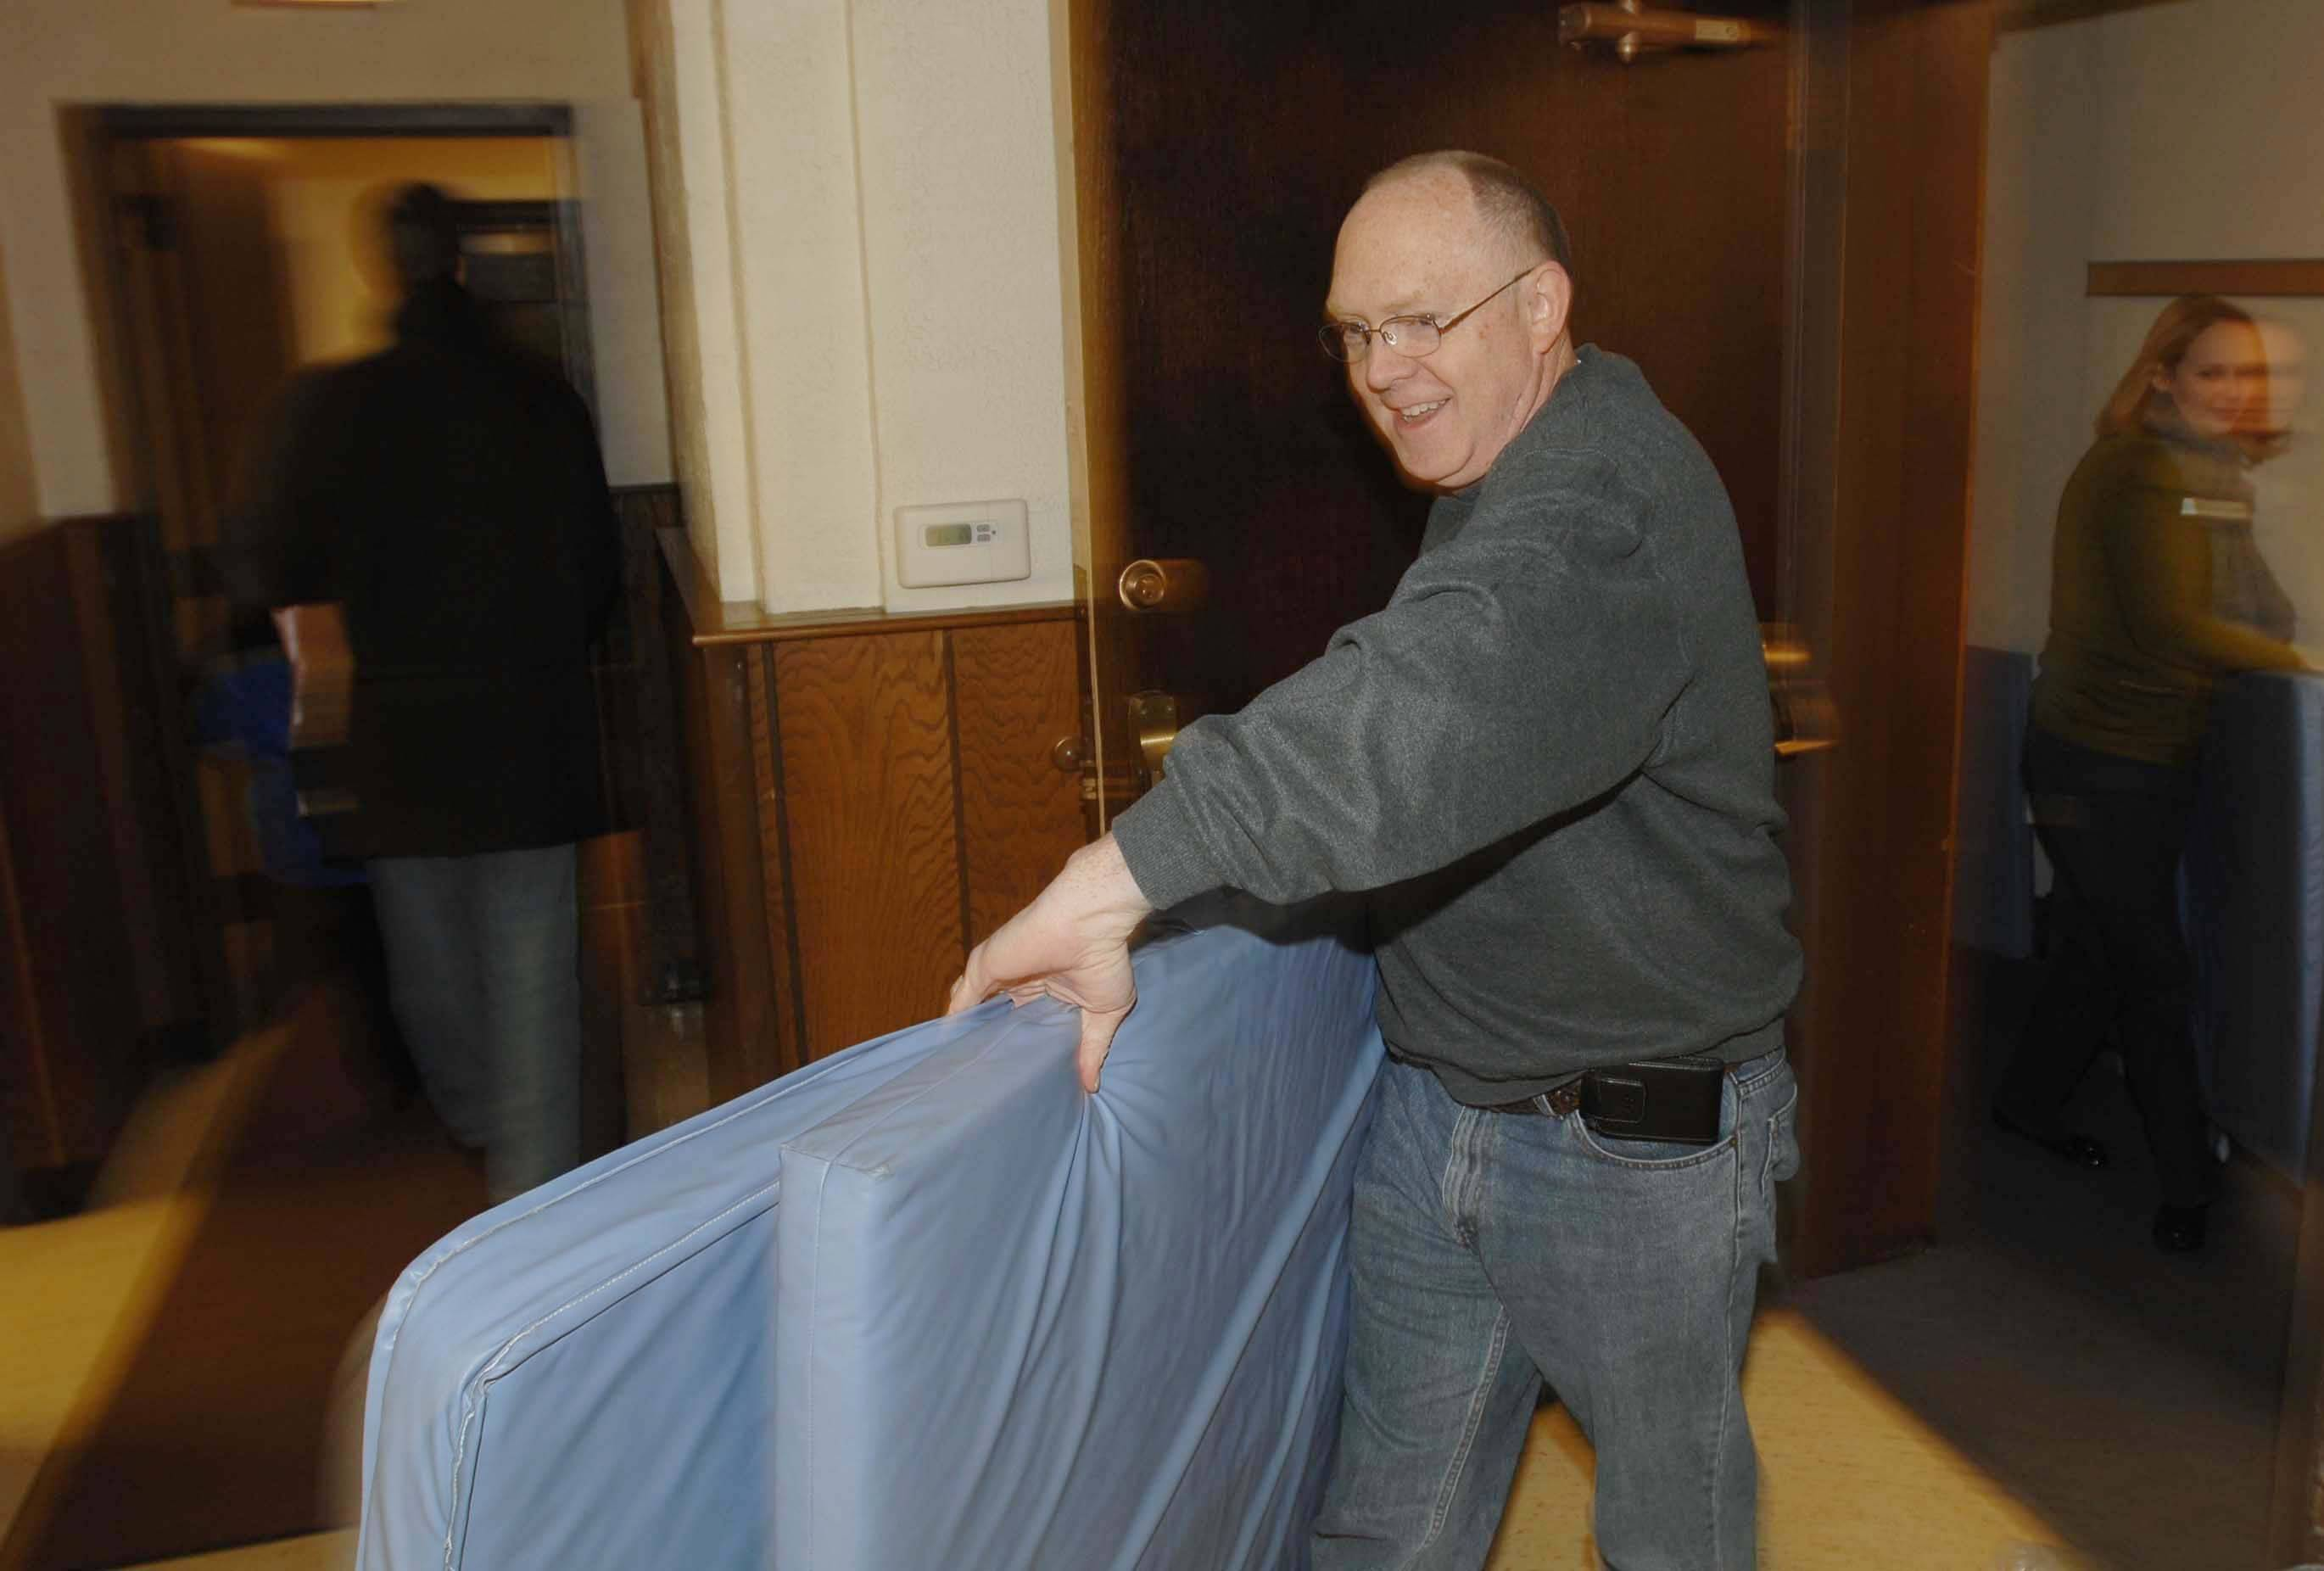 Mark Lindley of Naperville pulls pads into the PADS shelter at First Congregational Church in Naperville Wednesday.